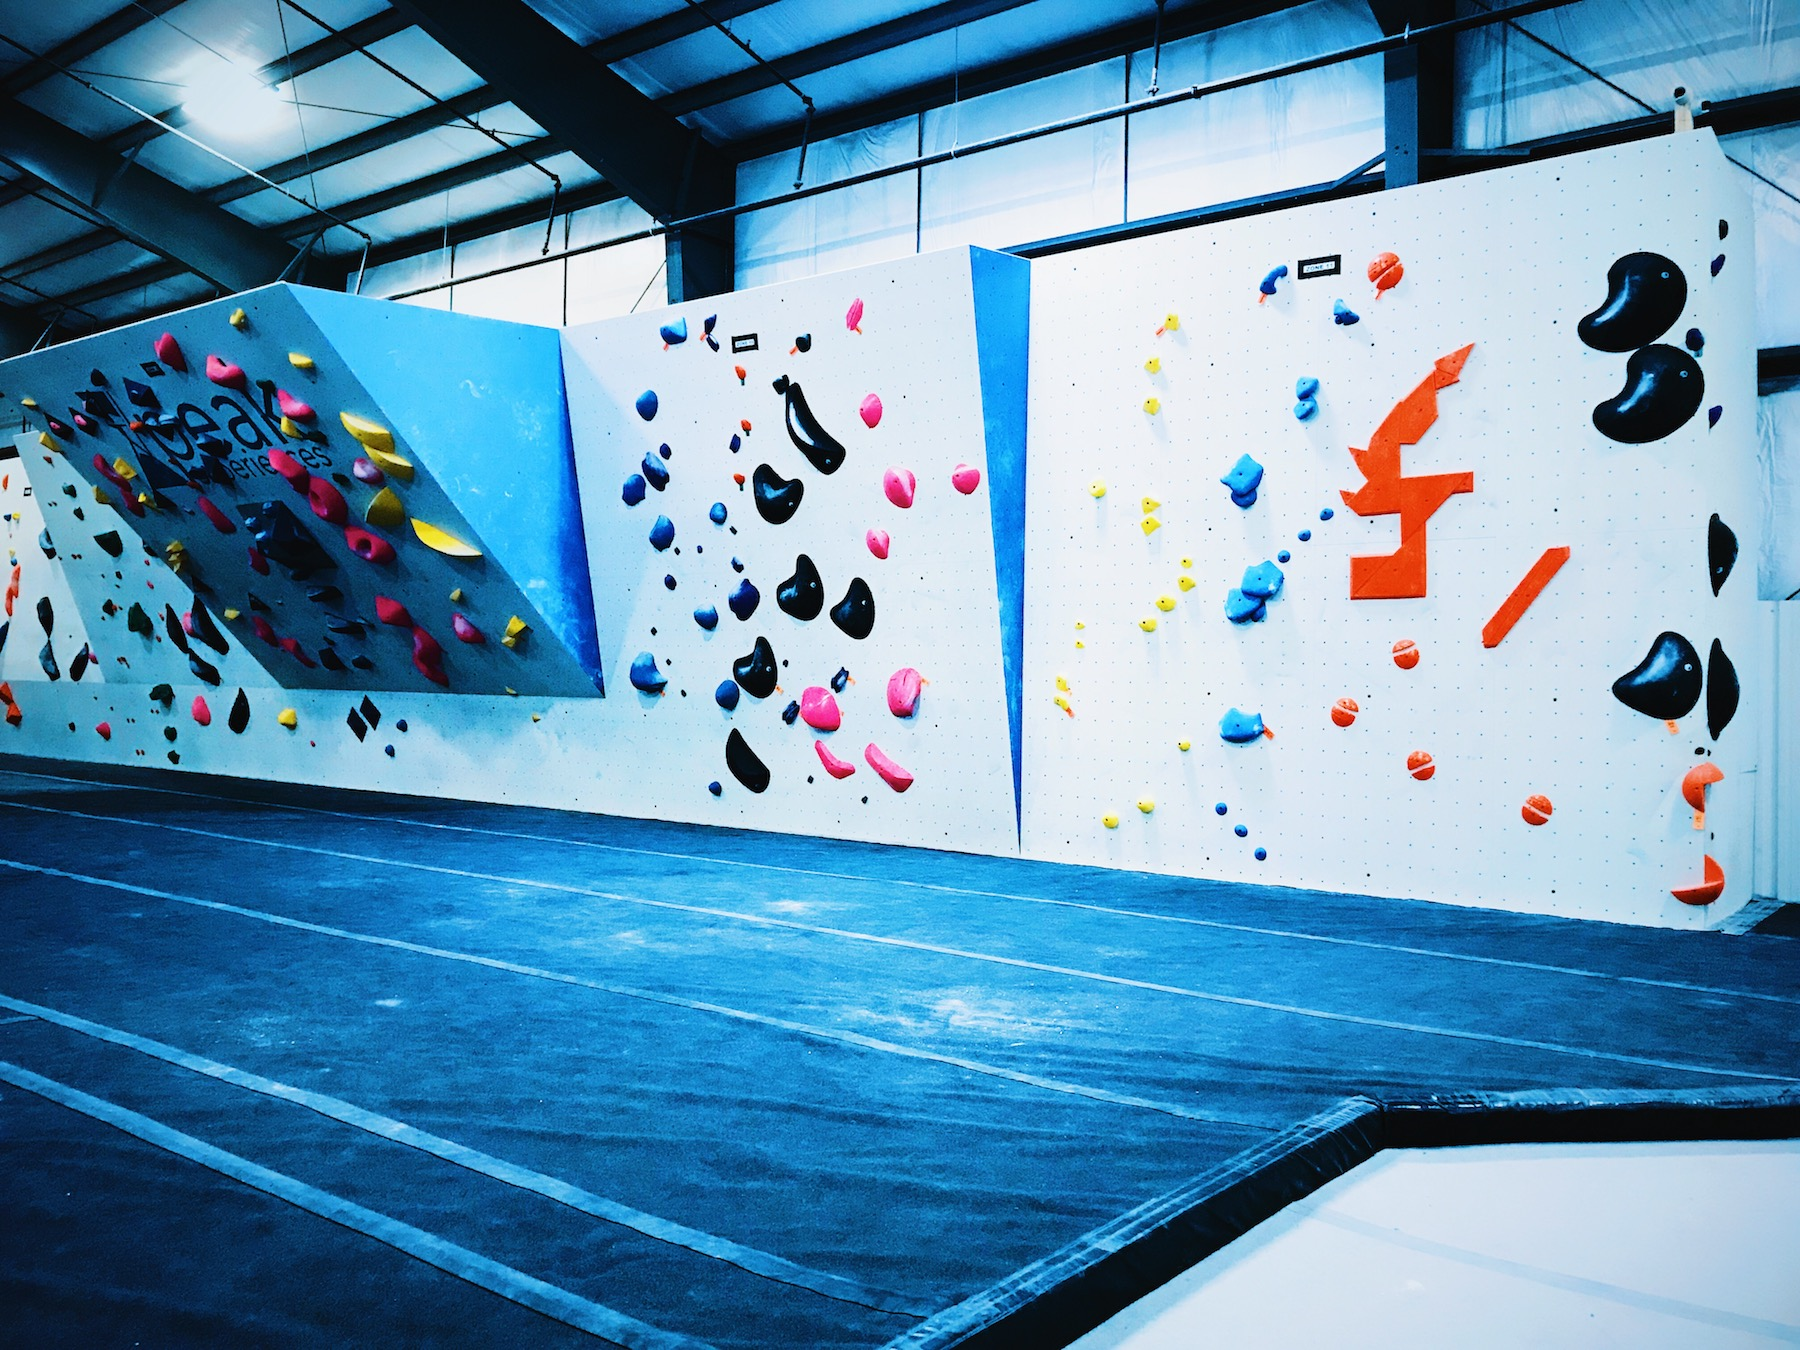 60ft. competition style boulder wall